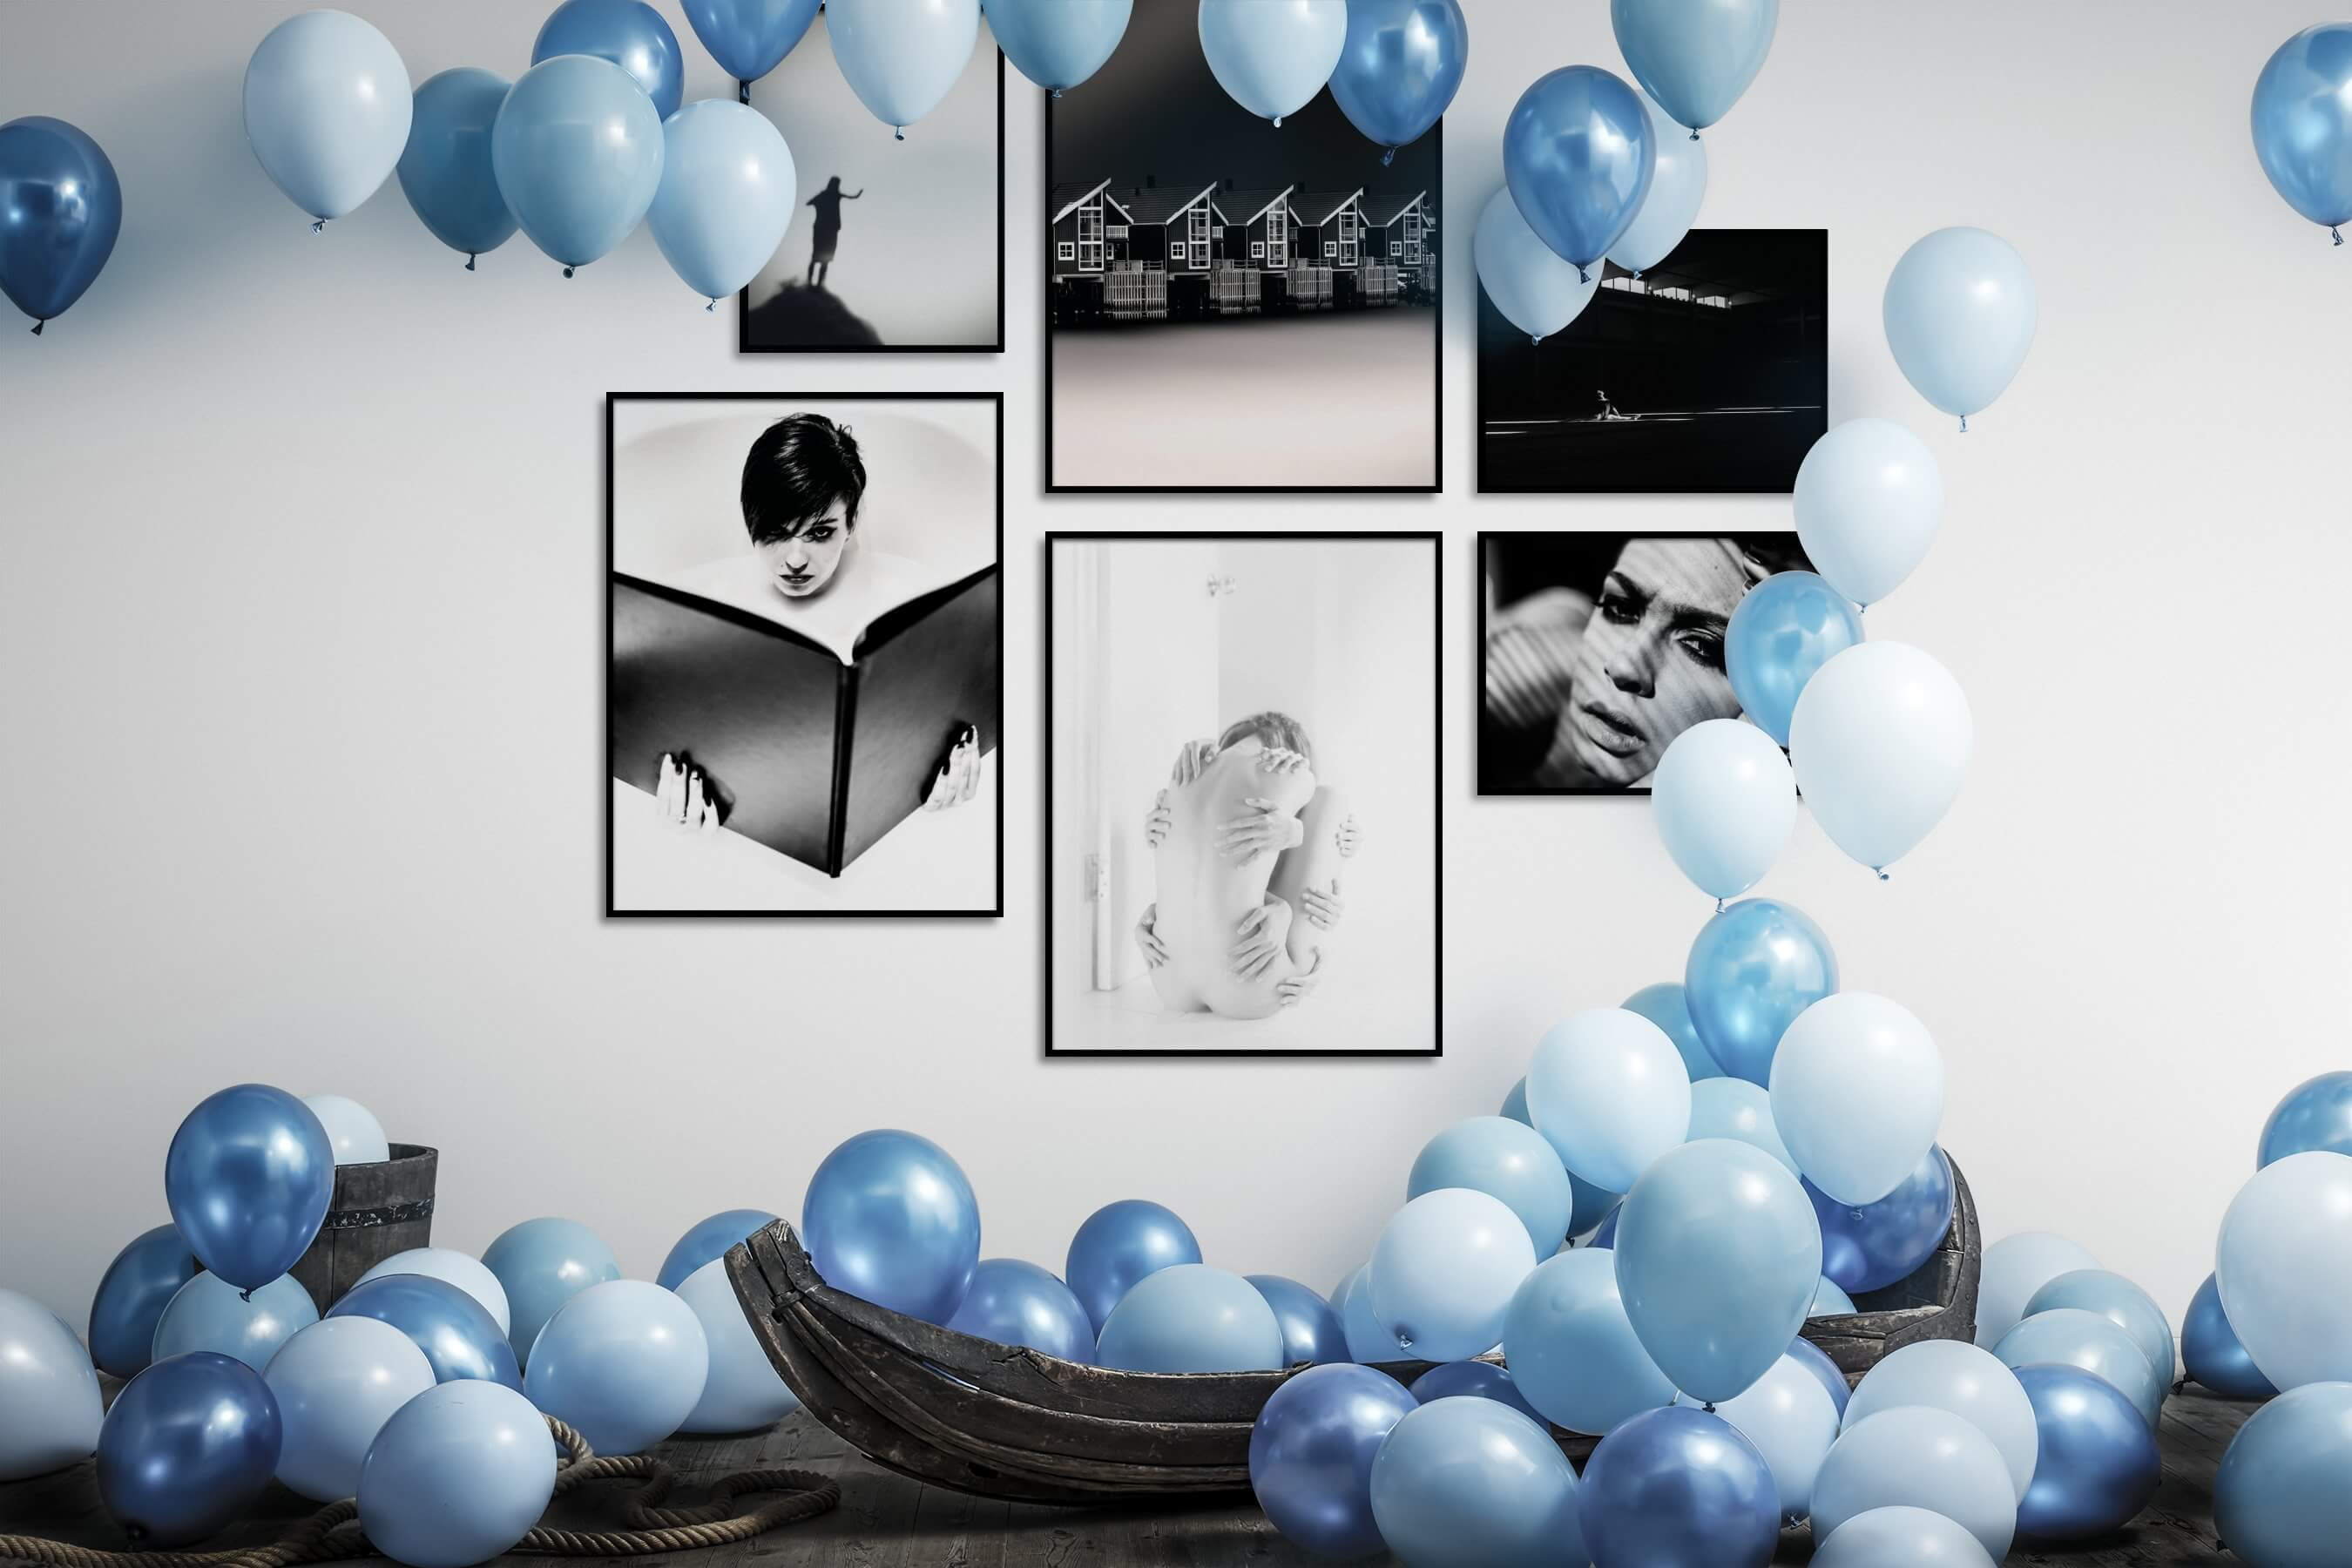 Gallery wall idea with six framed pictures arranged on a wall depicting Black & White, For the Minimalist, Artsy, Fashion & Beauty, and Dark Tones